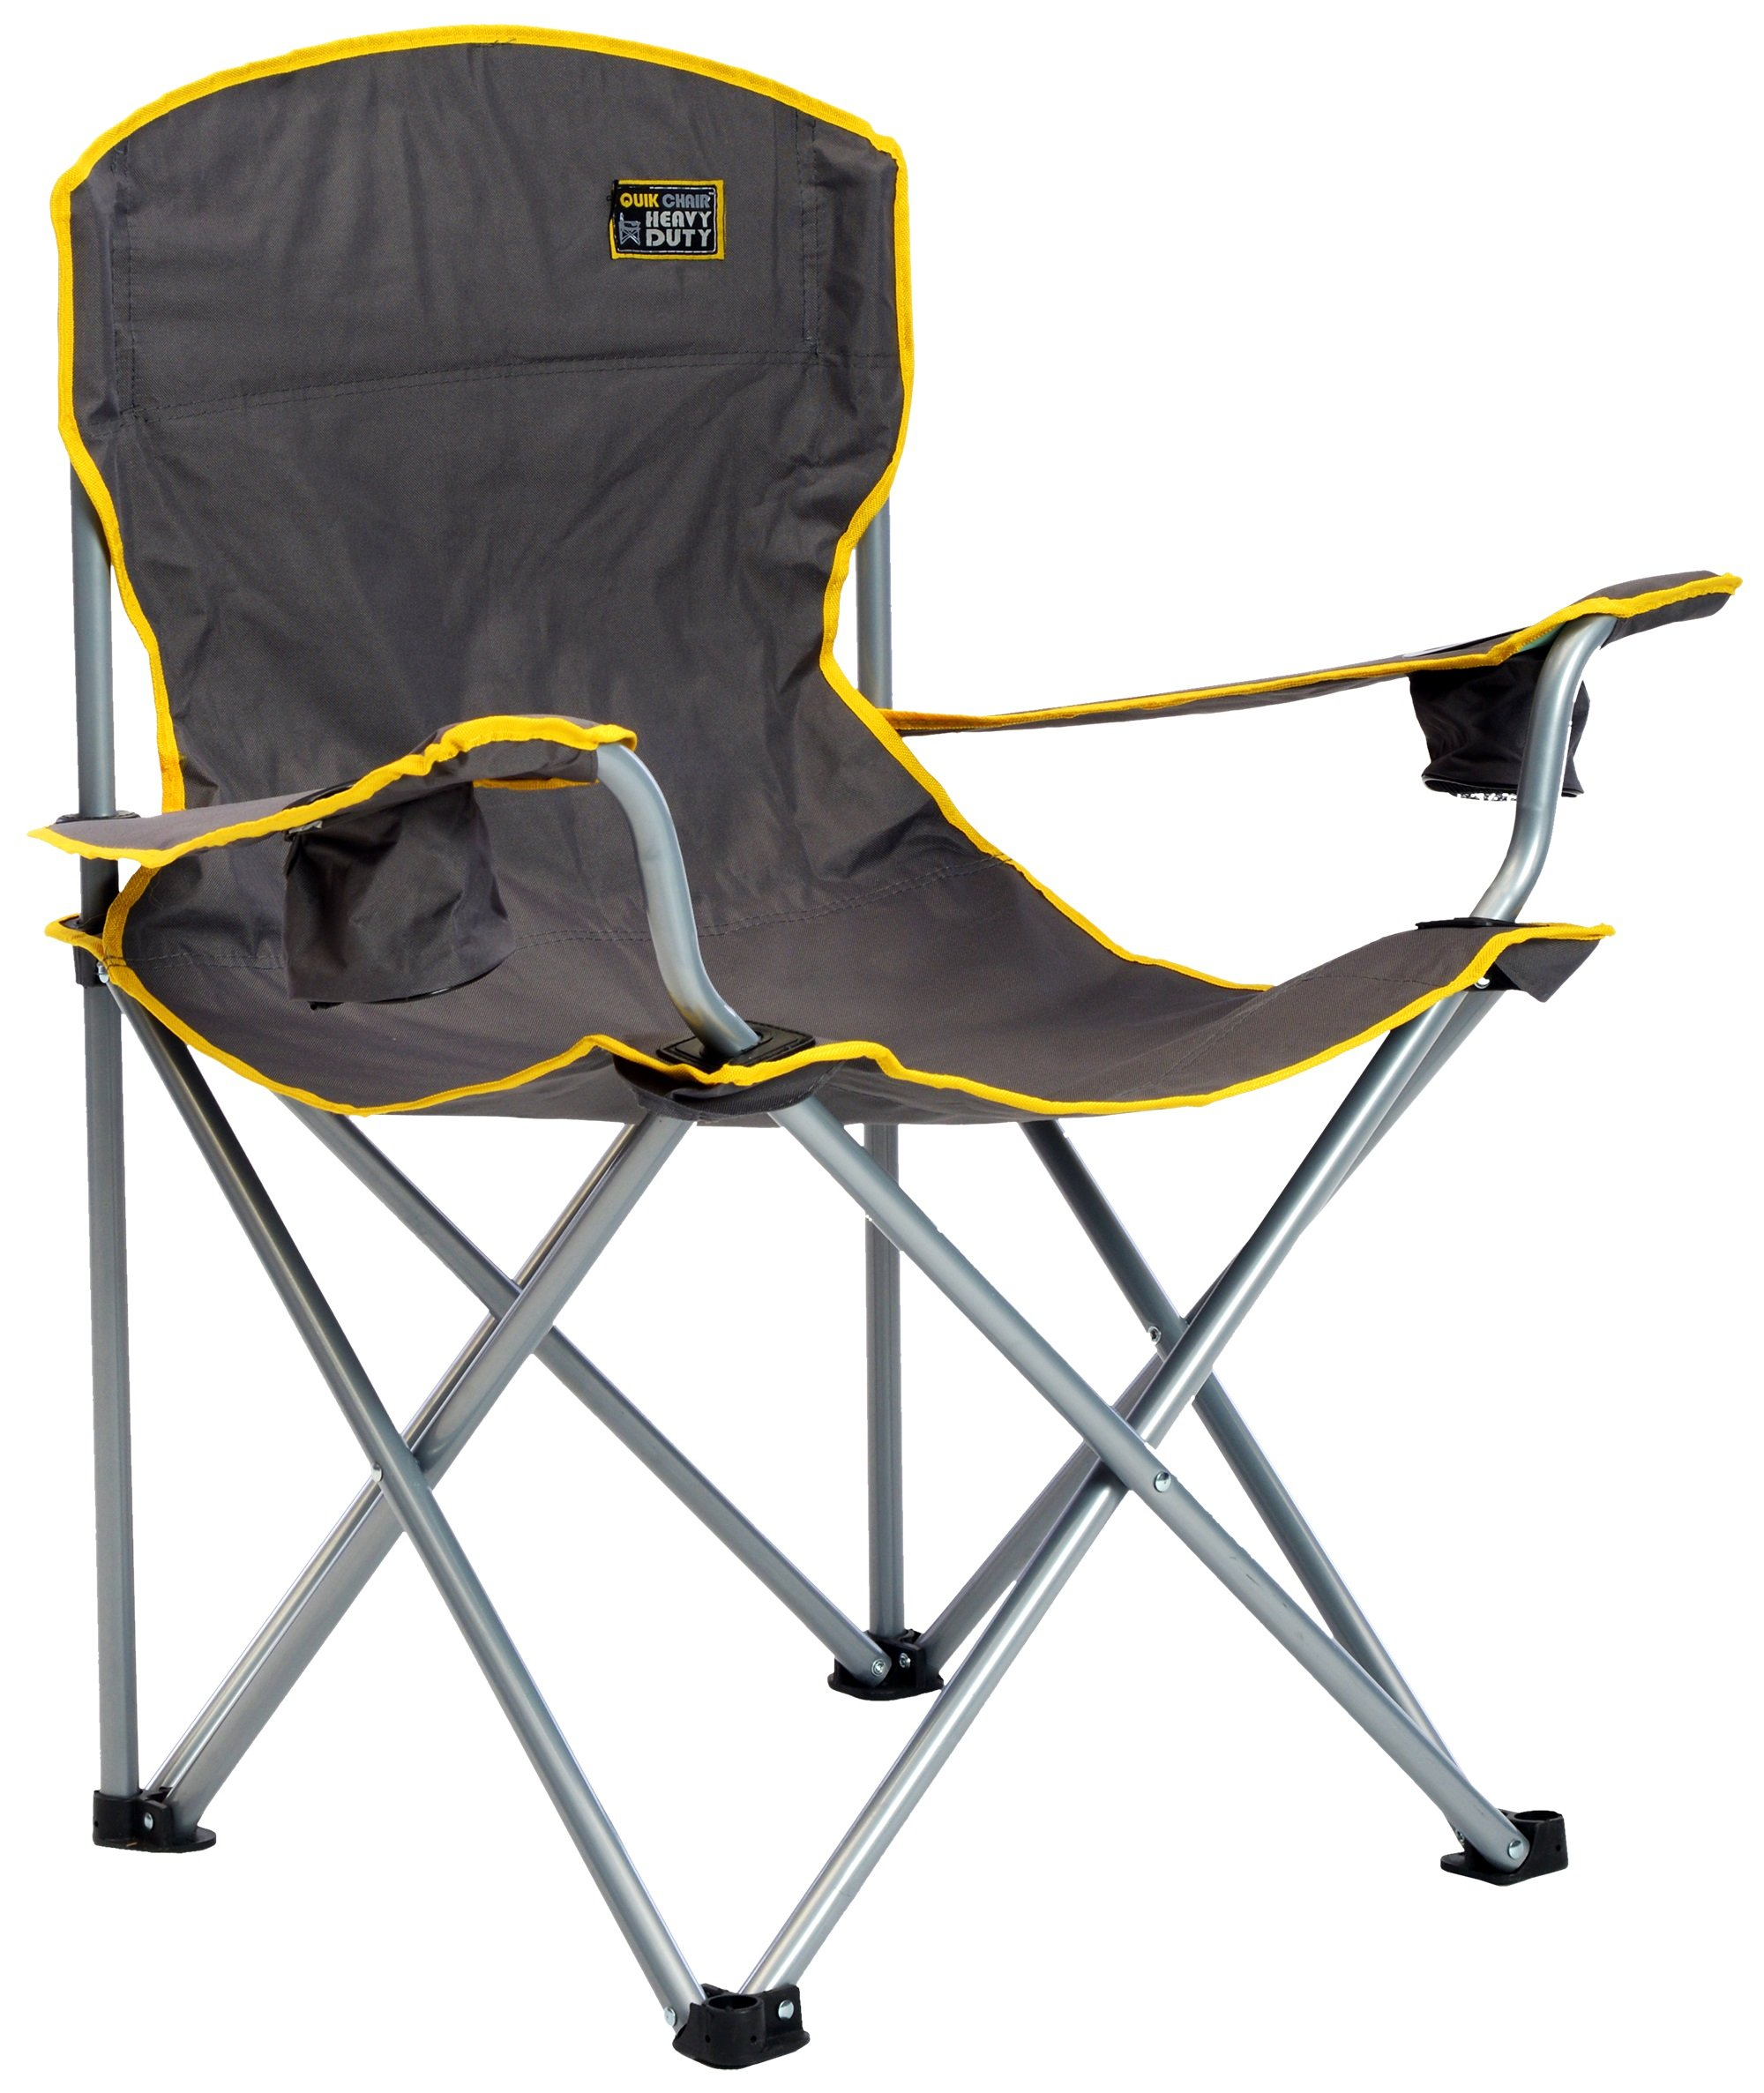 Details About Quikshade 150239 Quik Chair Heavy Duty Folding Camp Chair Grey